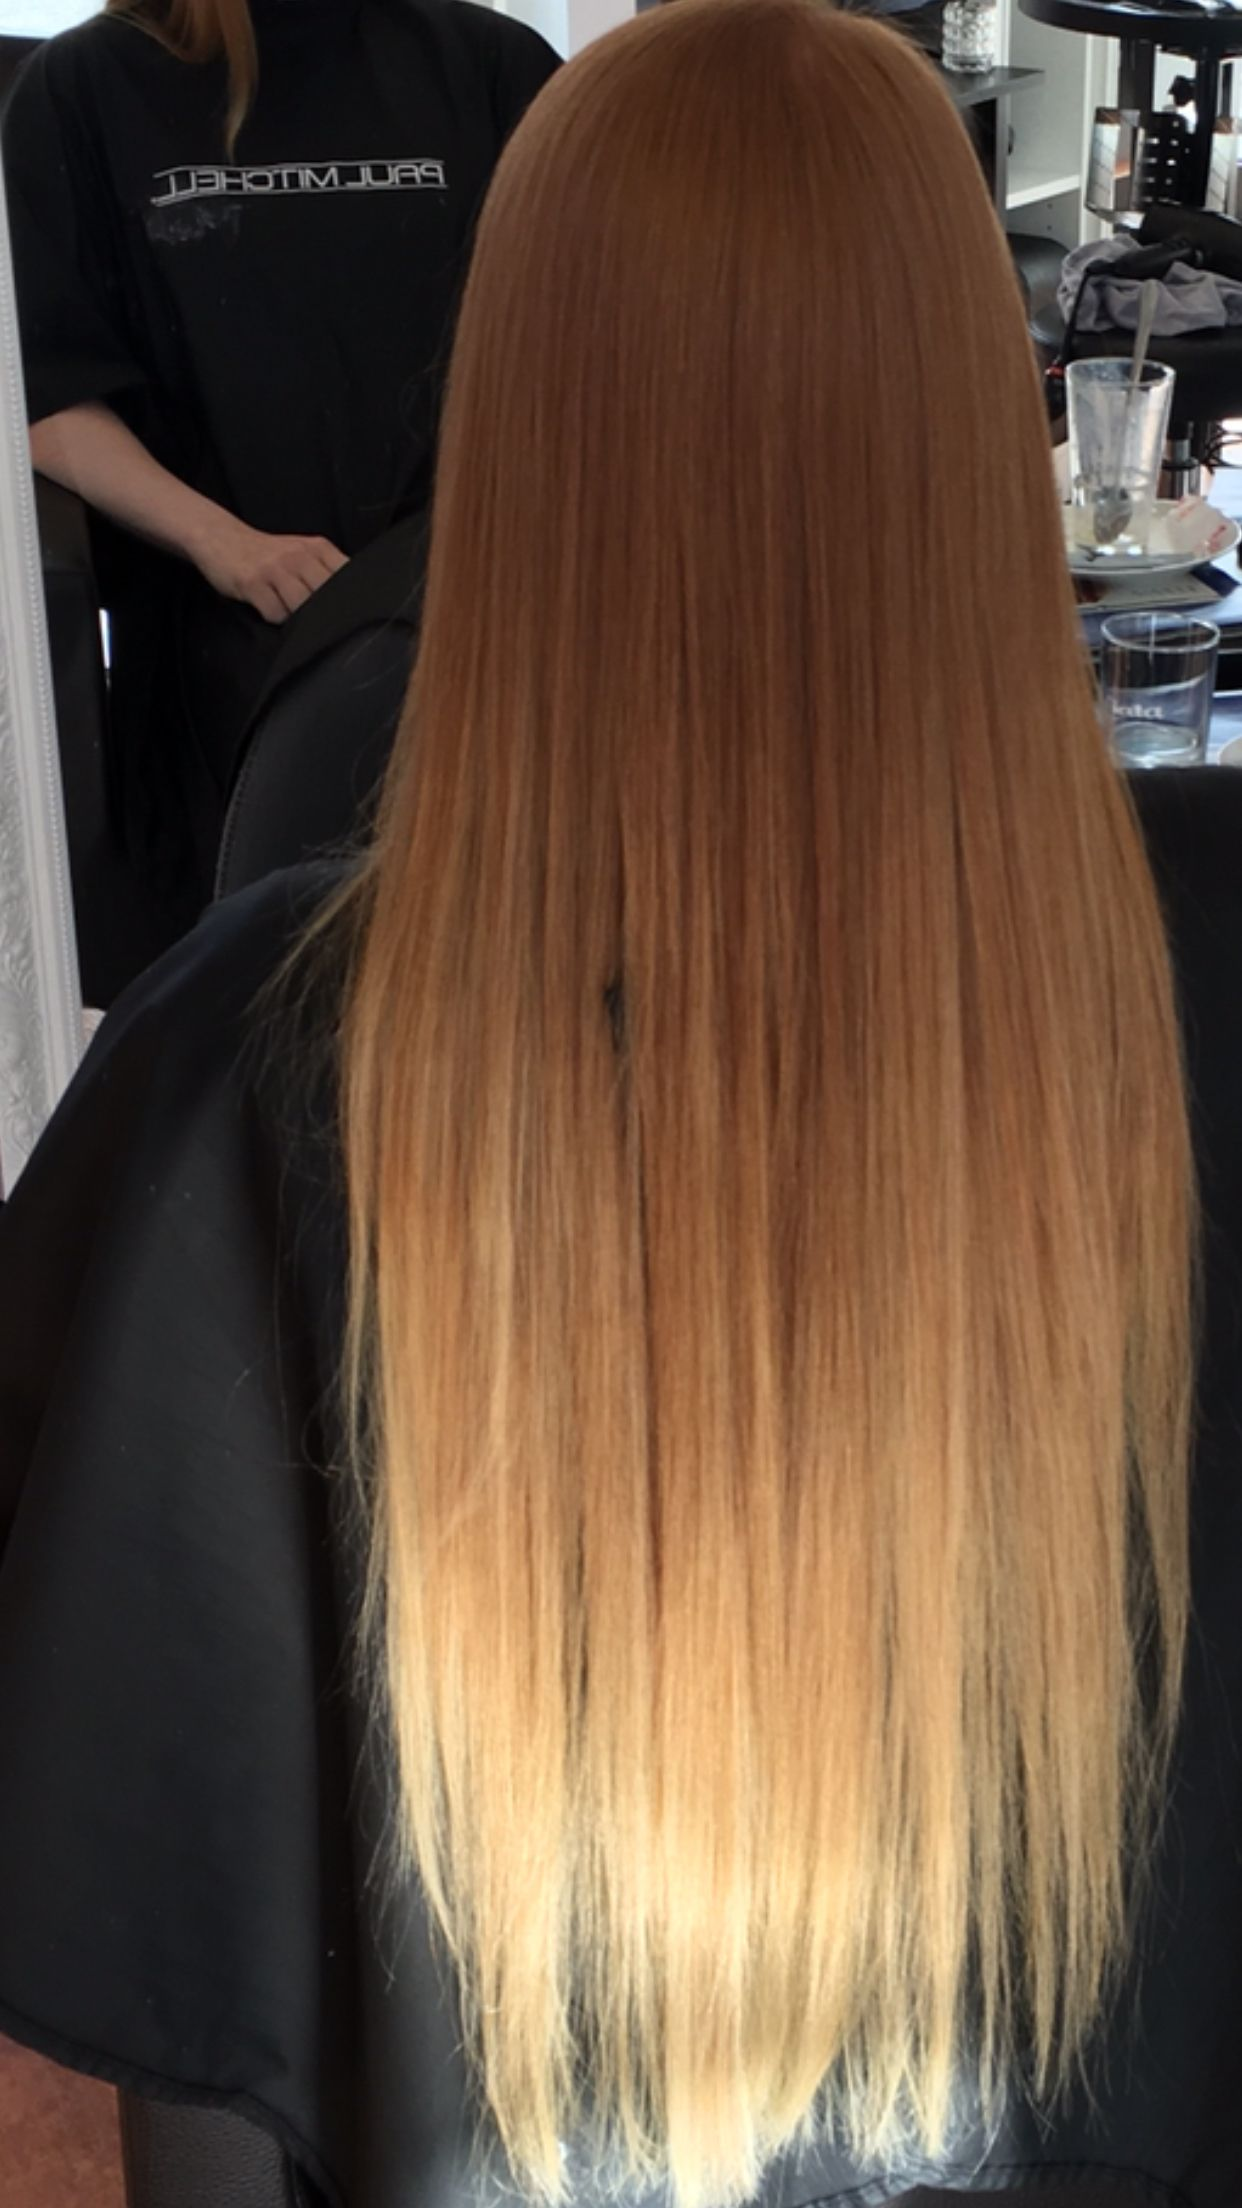 Ombre Hair Blond Rot 25 43 Insanely Awesome Ombre Hair Red Blue